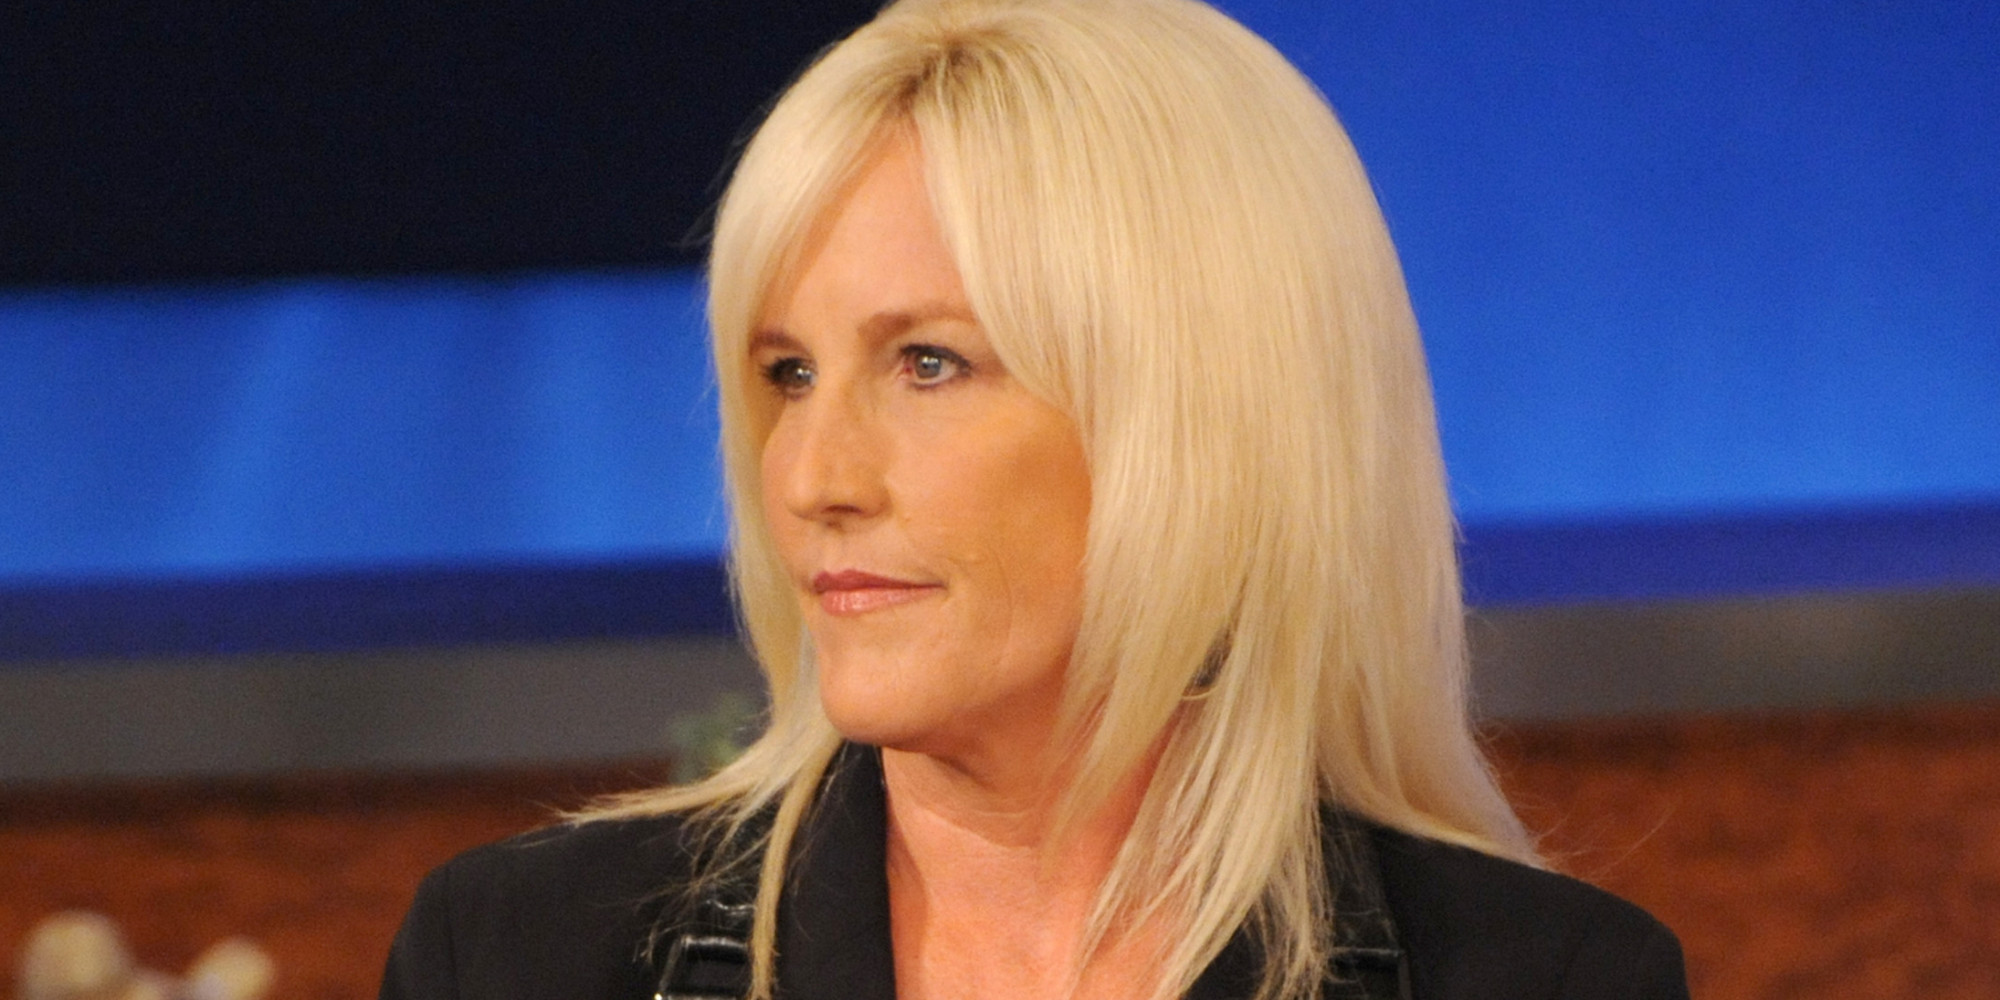 erin brockovich pitches game changer following west virginia  erin brockovich pitches game changer following west virginia chemical spill huffpost